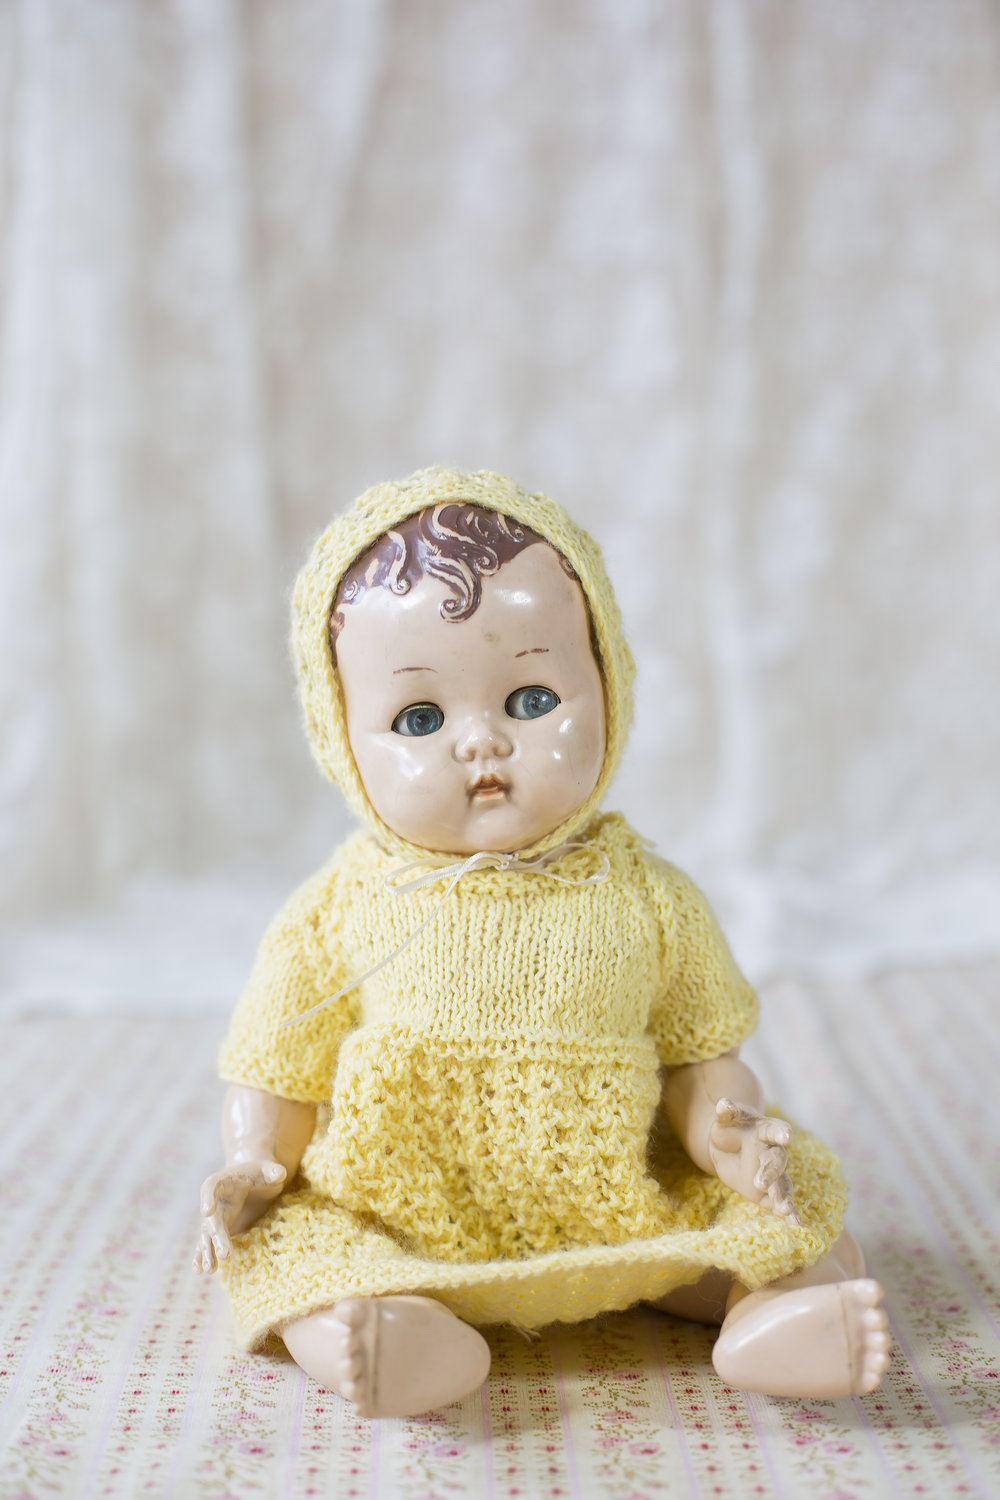 Childhood Pedigree with bent legs. It has painted brown hair, Judith made her do a headstand as a child and broke the dolls head in two, she had to go to the dolls hospital!